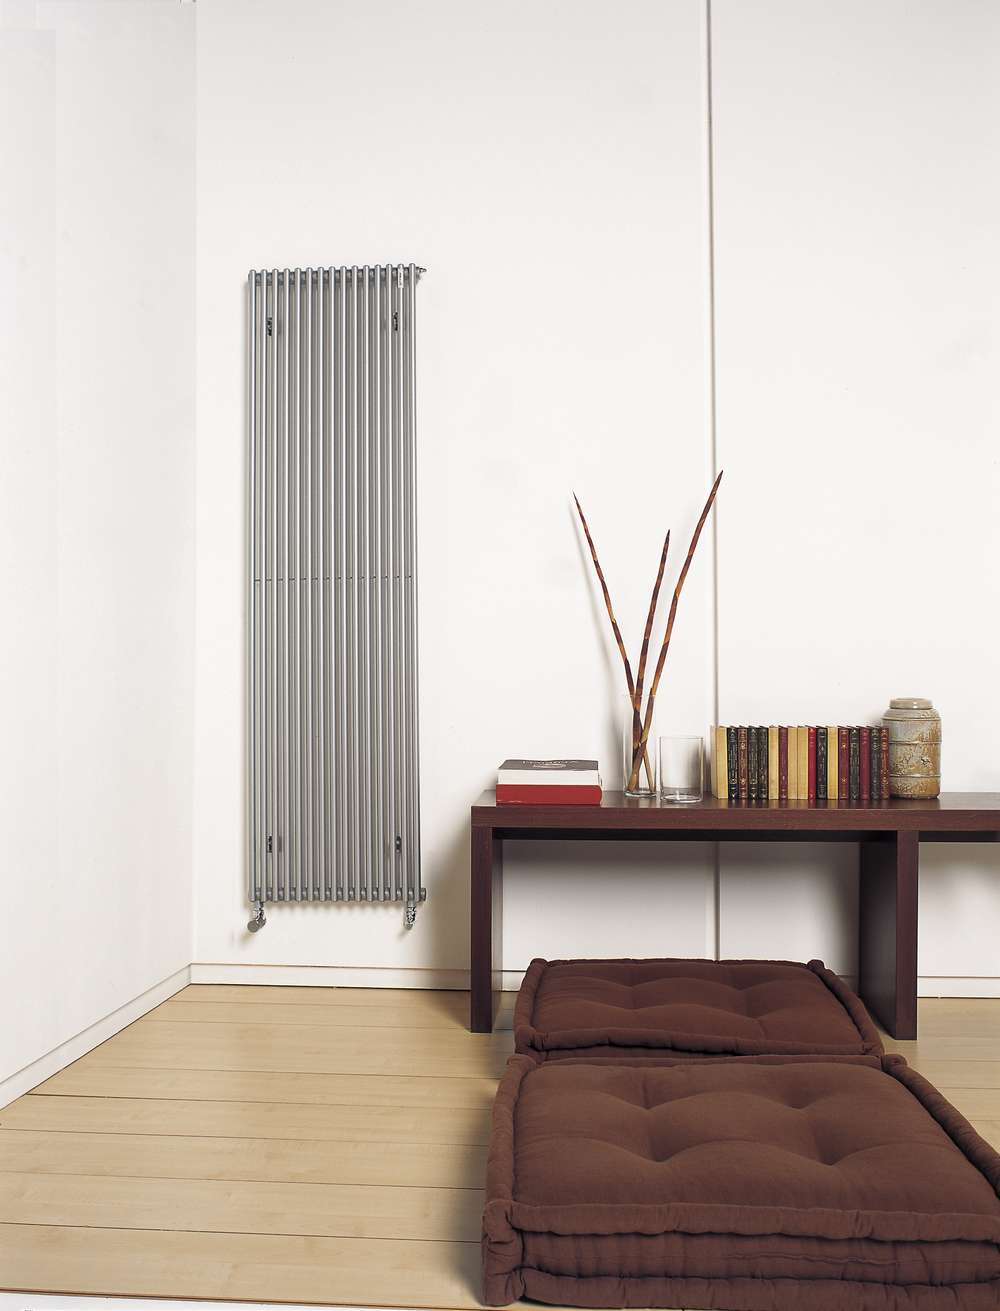 radiateurs acova acova radiateur karena spa ec color with radiateurs acova excellent with. Black Bedroom Furniture Sets. Home Design Ideas